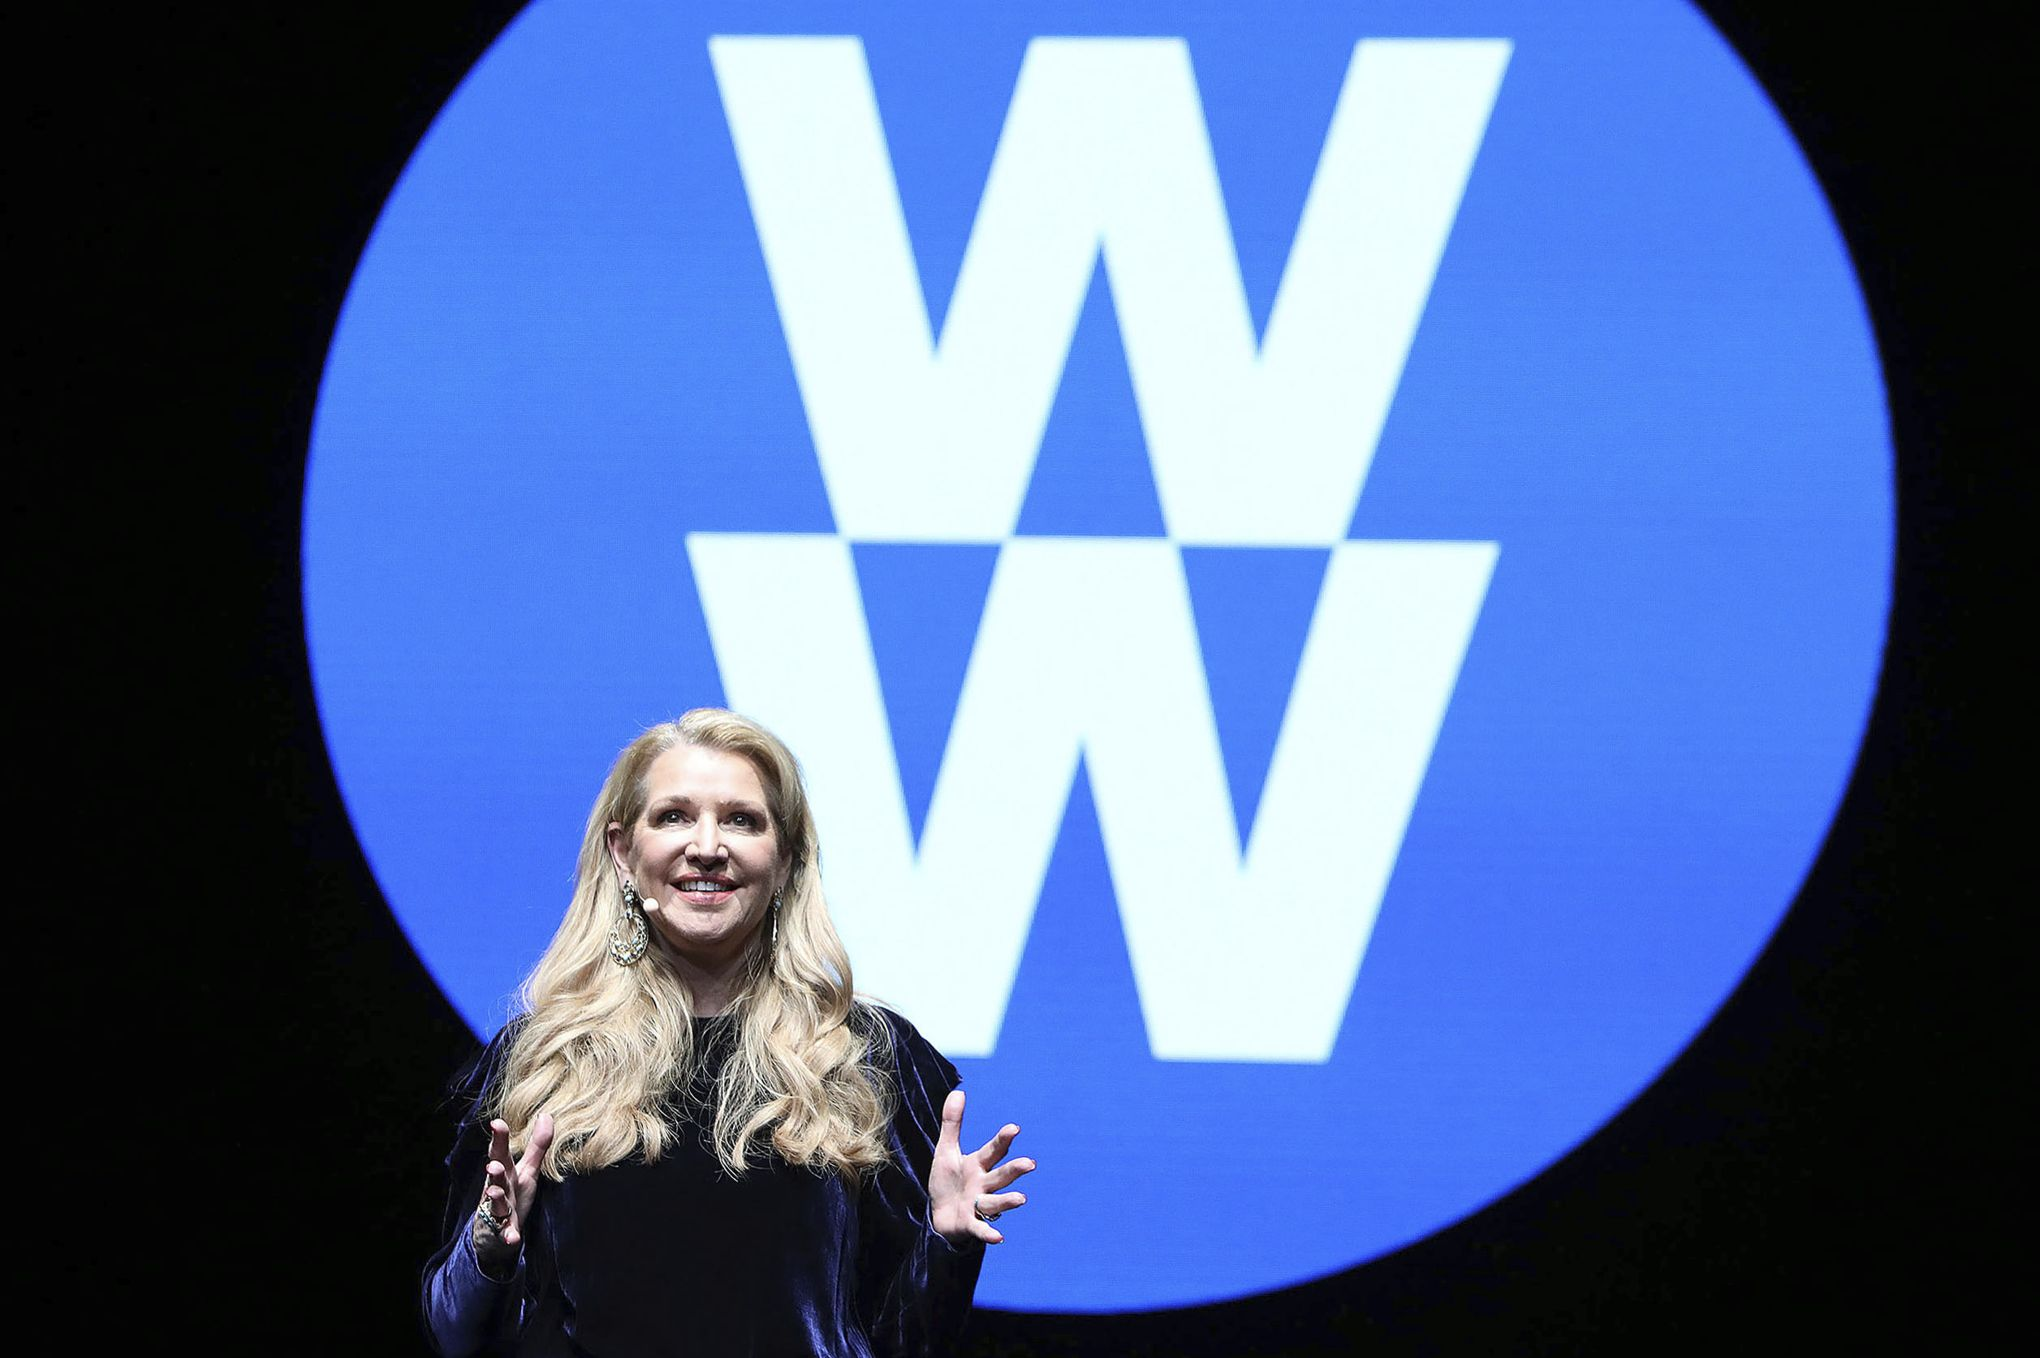 Weight Watchers Change De Nom Et Devient Ww